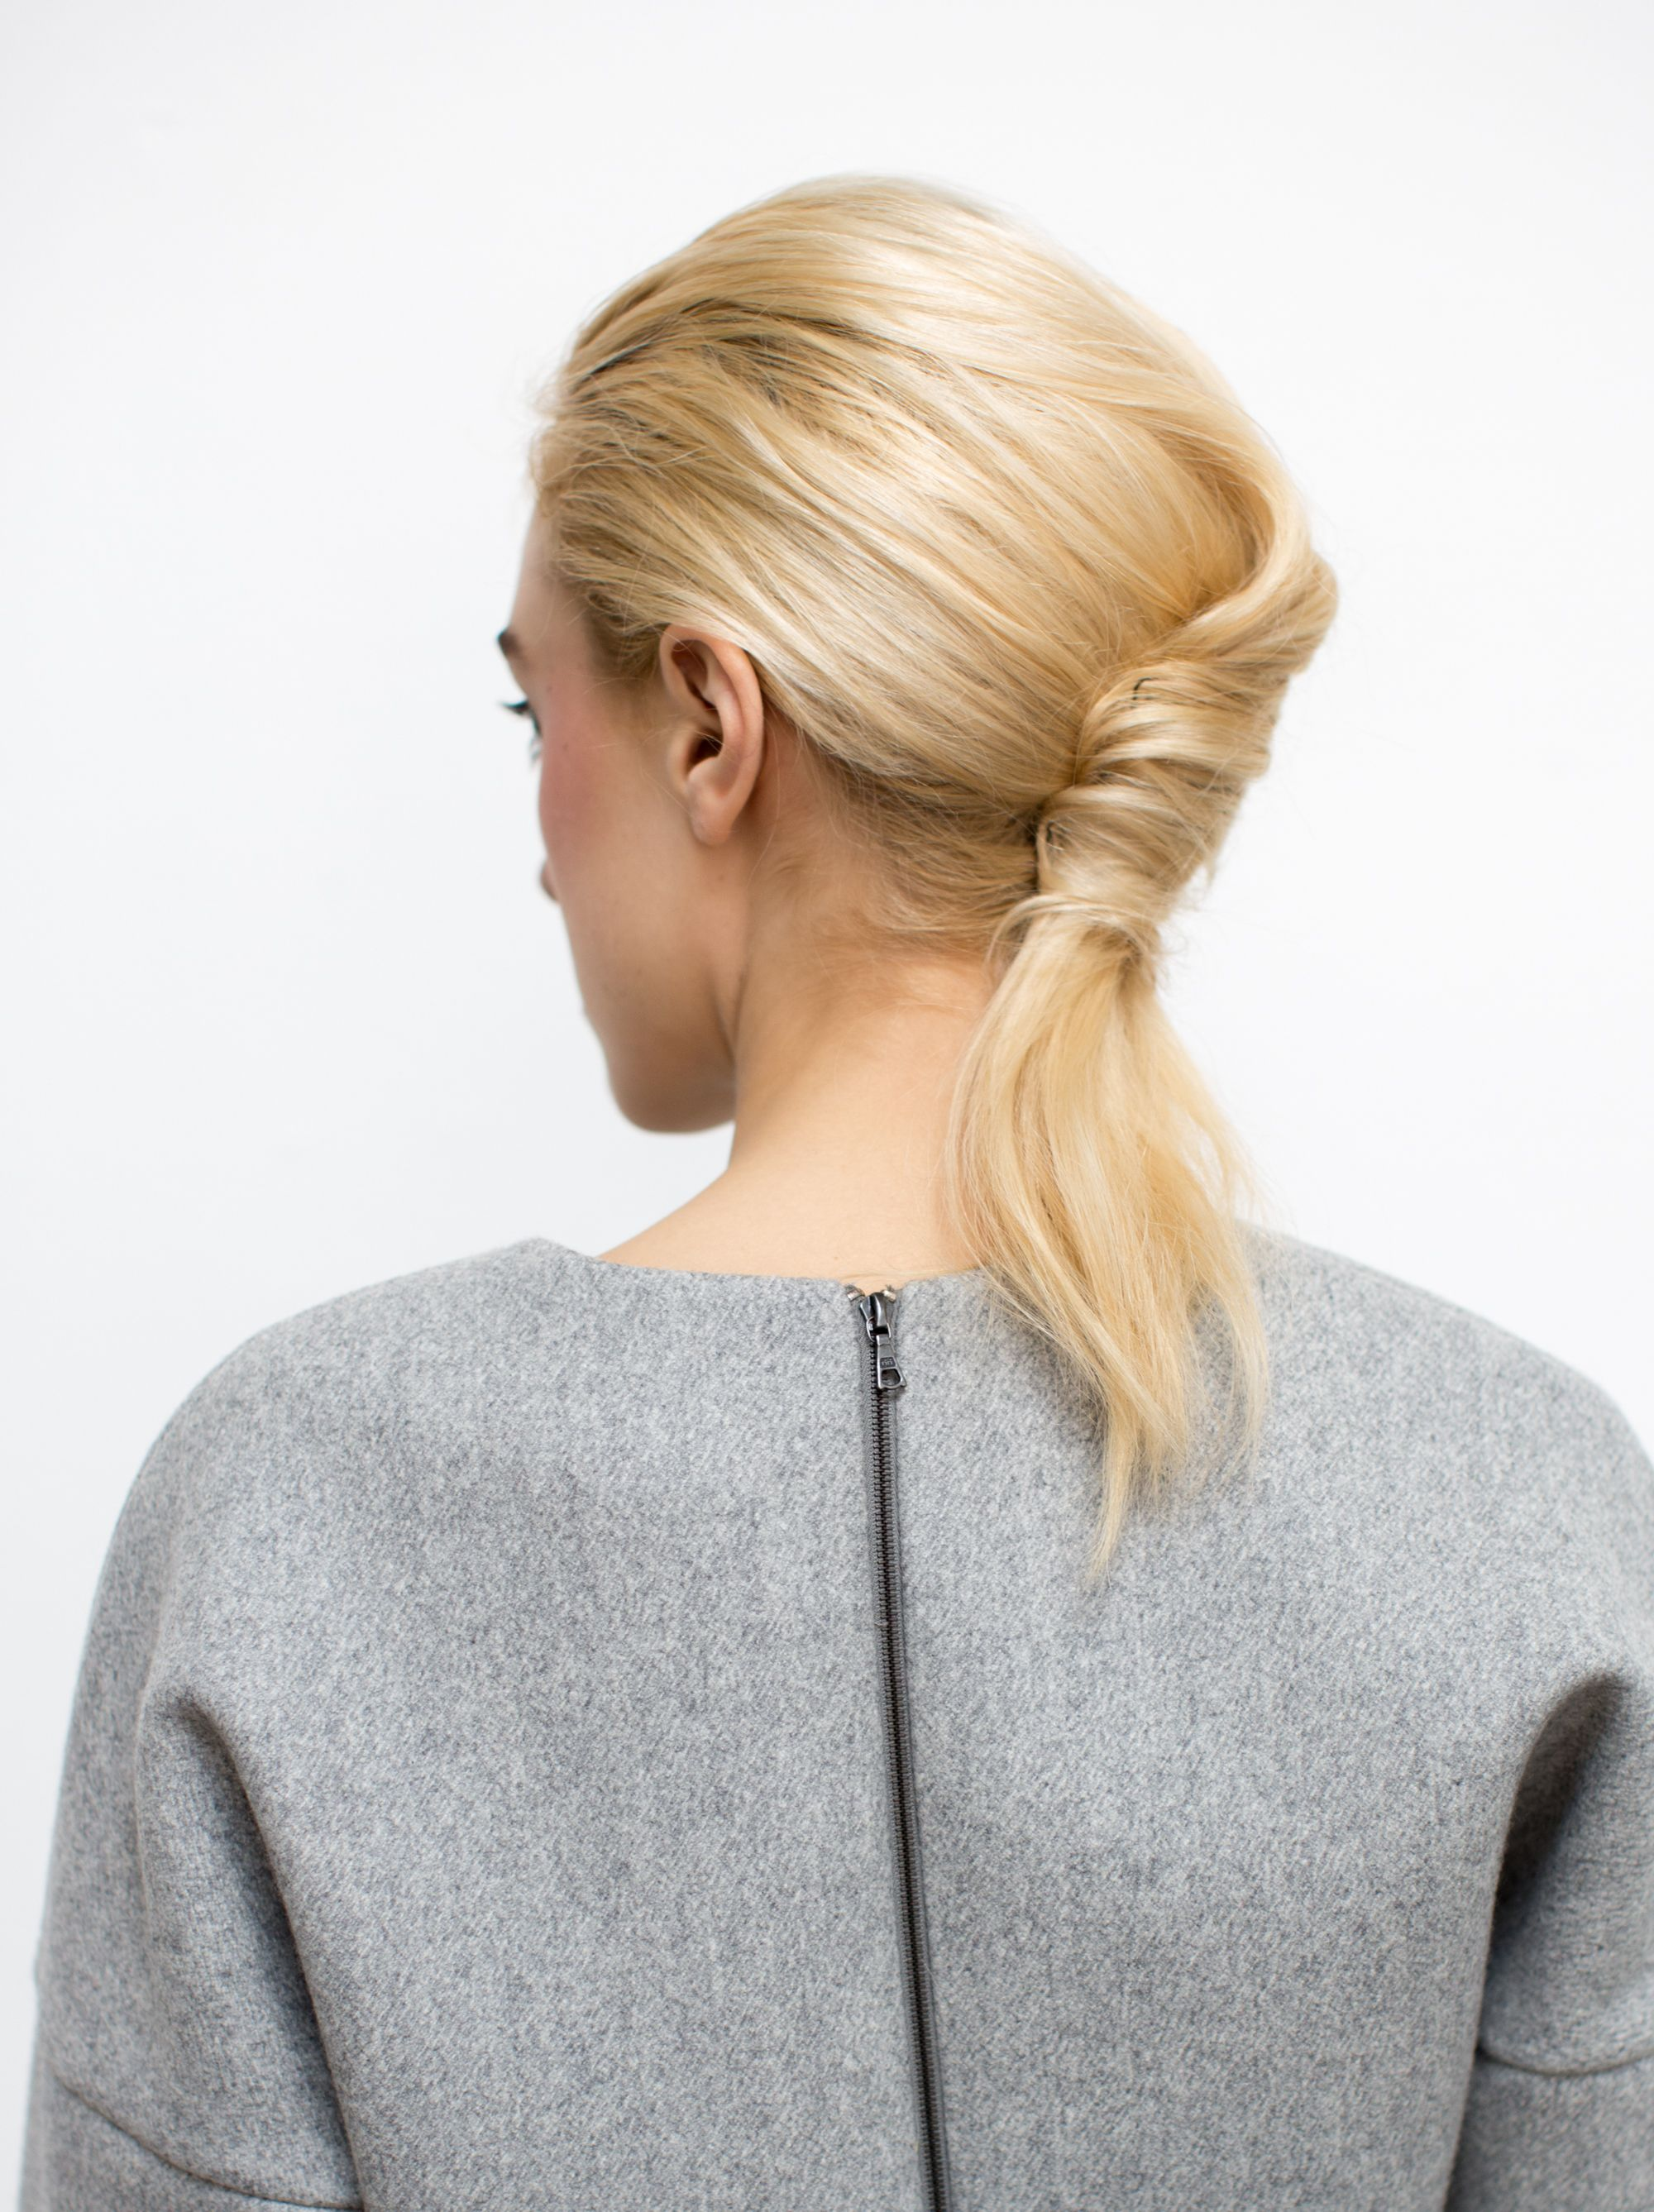 """Bb. Stylist Allen created this """"ponytail/French twist hybrid"""" for Rosie Assoulin's Fall/Winter 2014 show. The inspiration for this style was to mimic the look of hair that had been tucked into a coat. #bumbleandbumble #BbBackstage #hair #ponytail #frenchtwist #fashionweek #NYFW #FW2014 #rosieassoulin"""